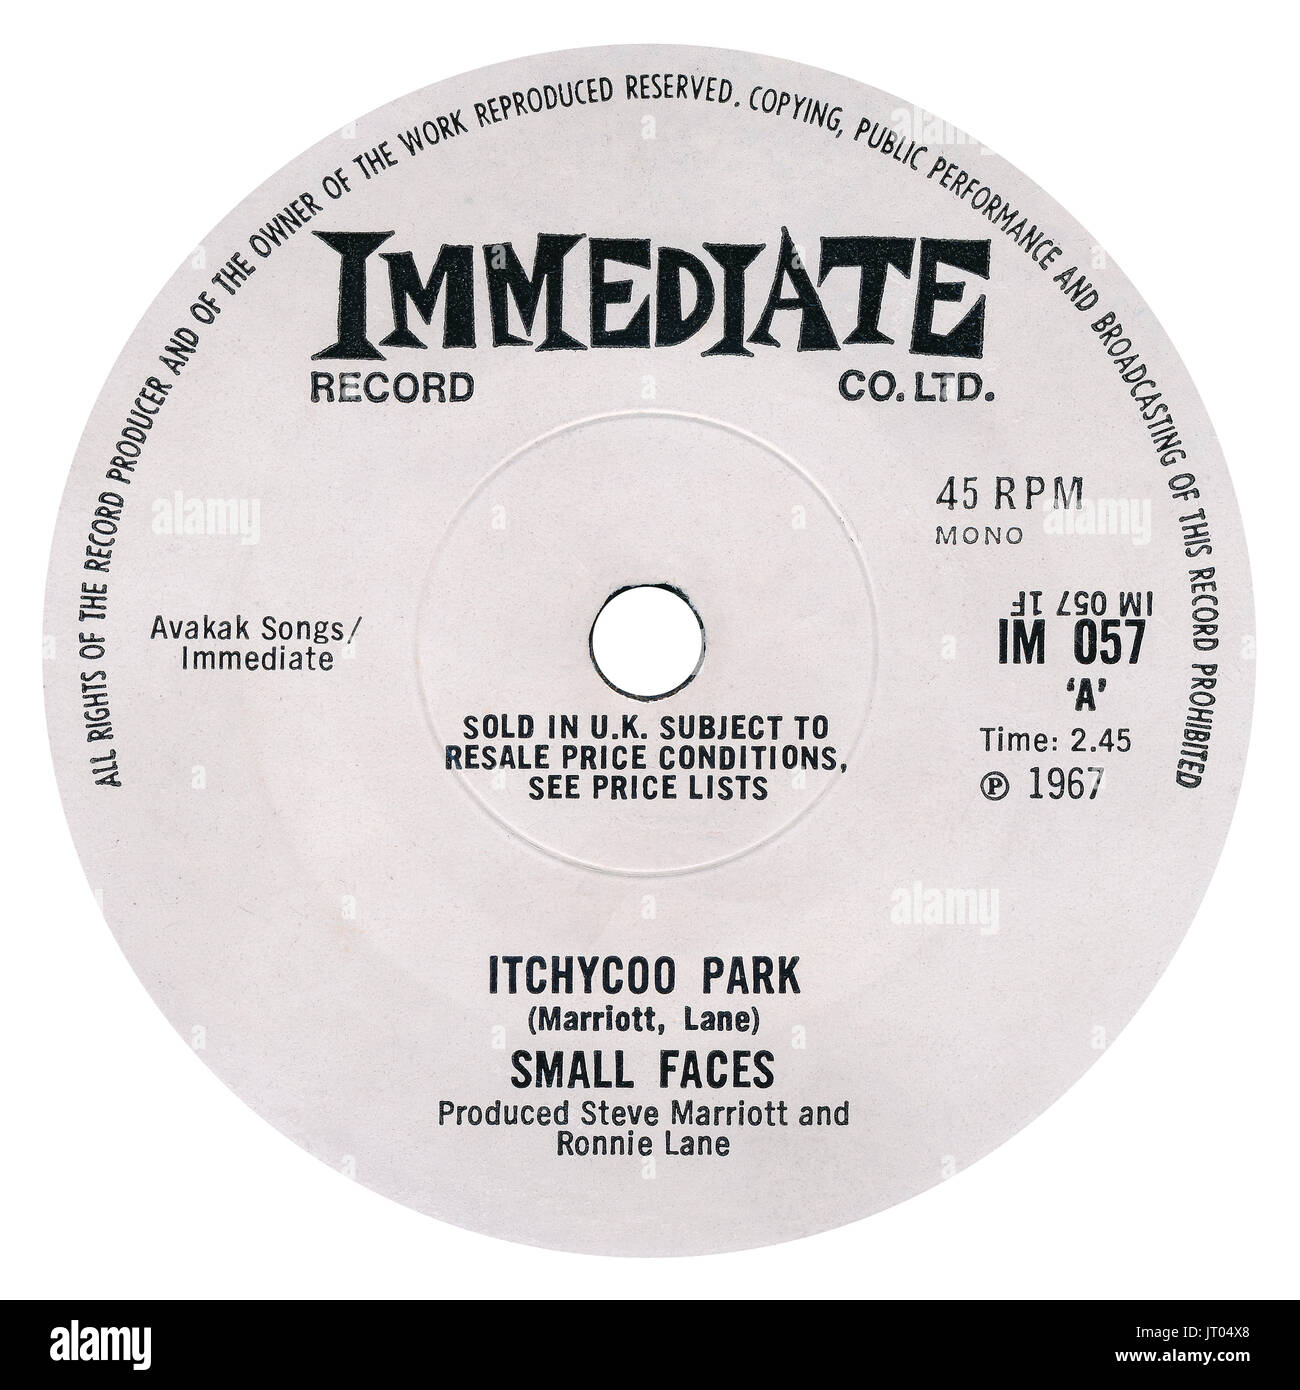 45 RPM 7' UK record label of Itchycoo Park by Small Faces on the Immediate label from 1967. - Stock Image